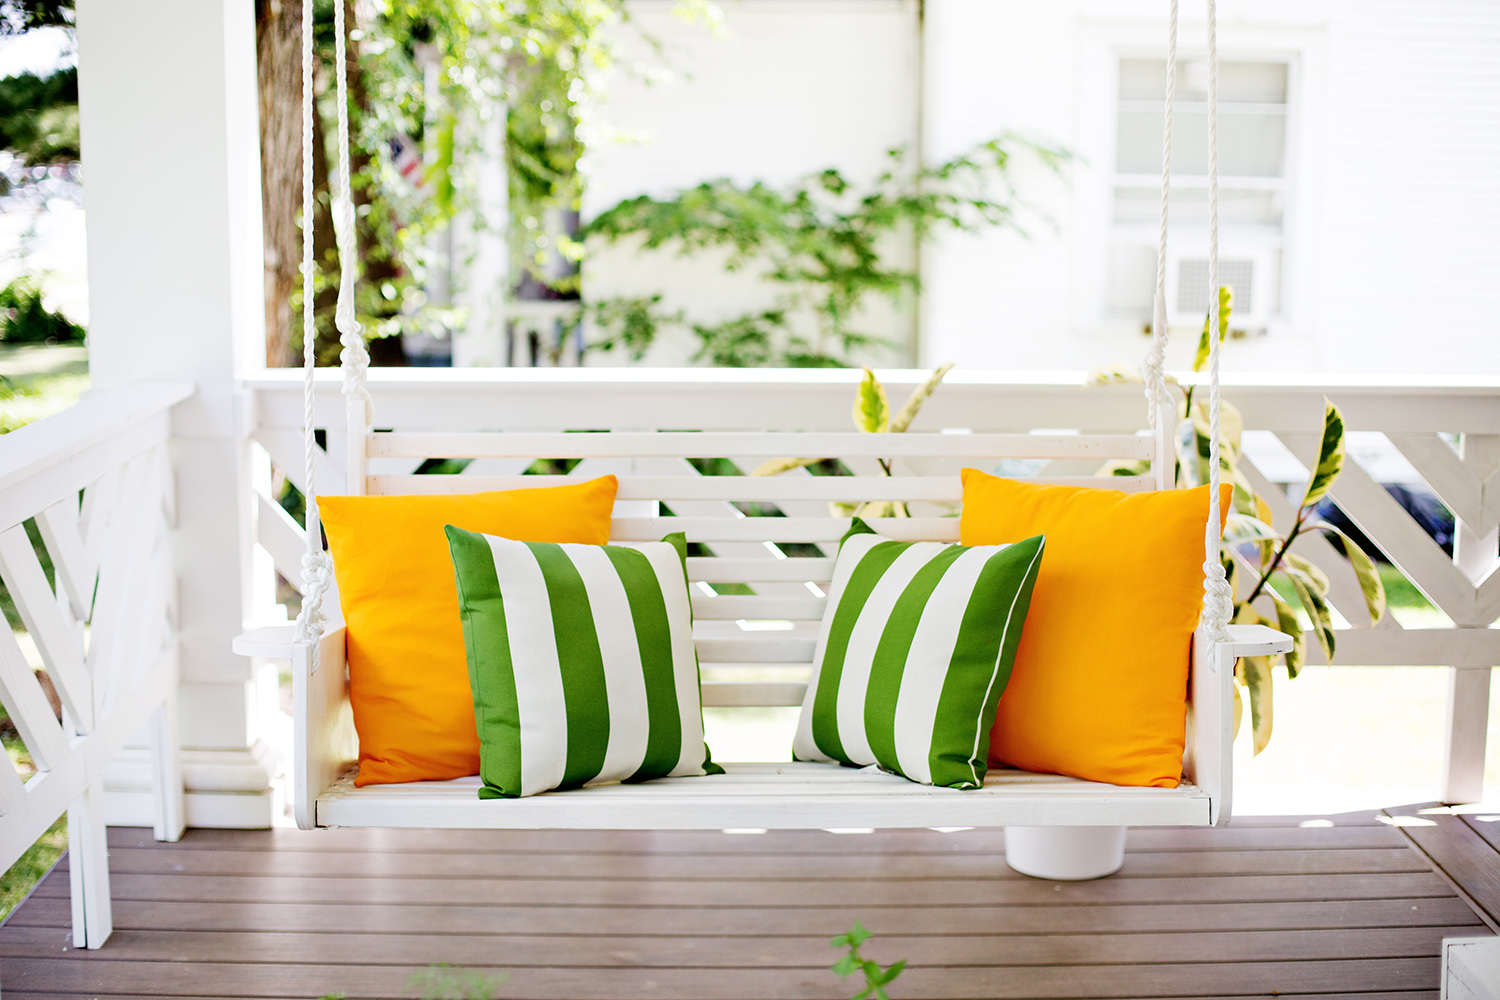 Almost hidden bright white swing with noticable pillows